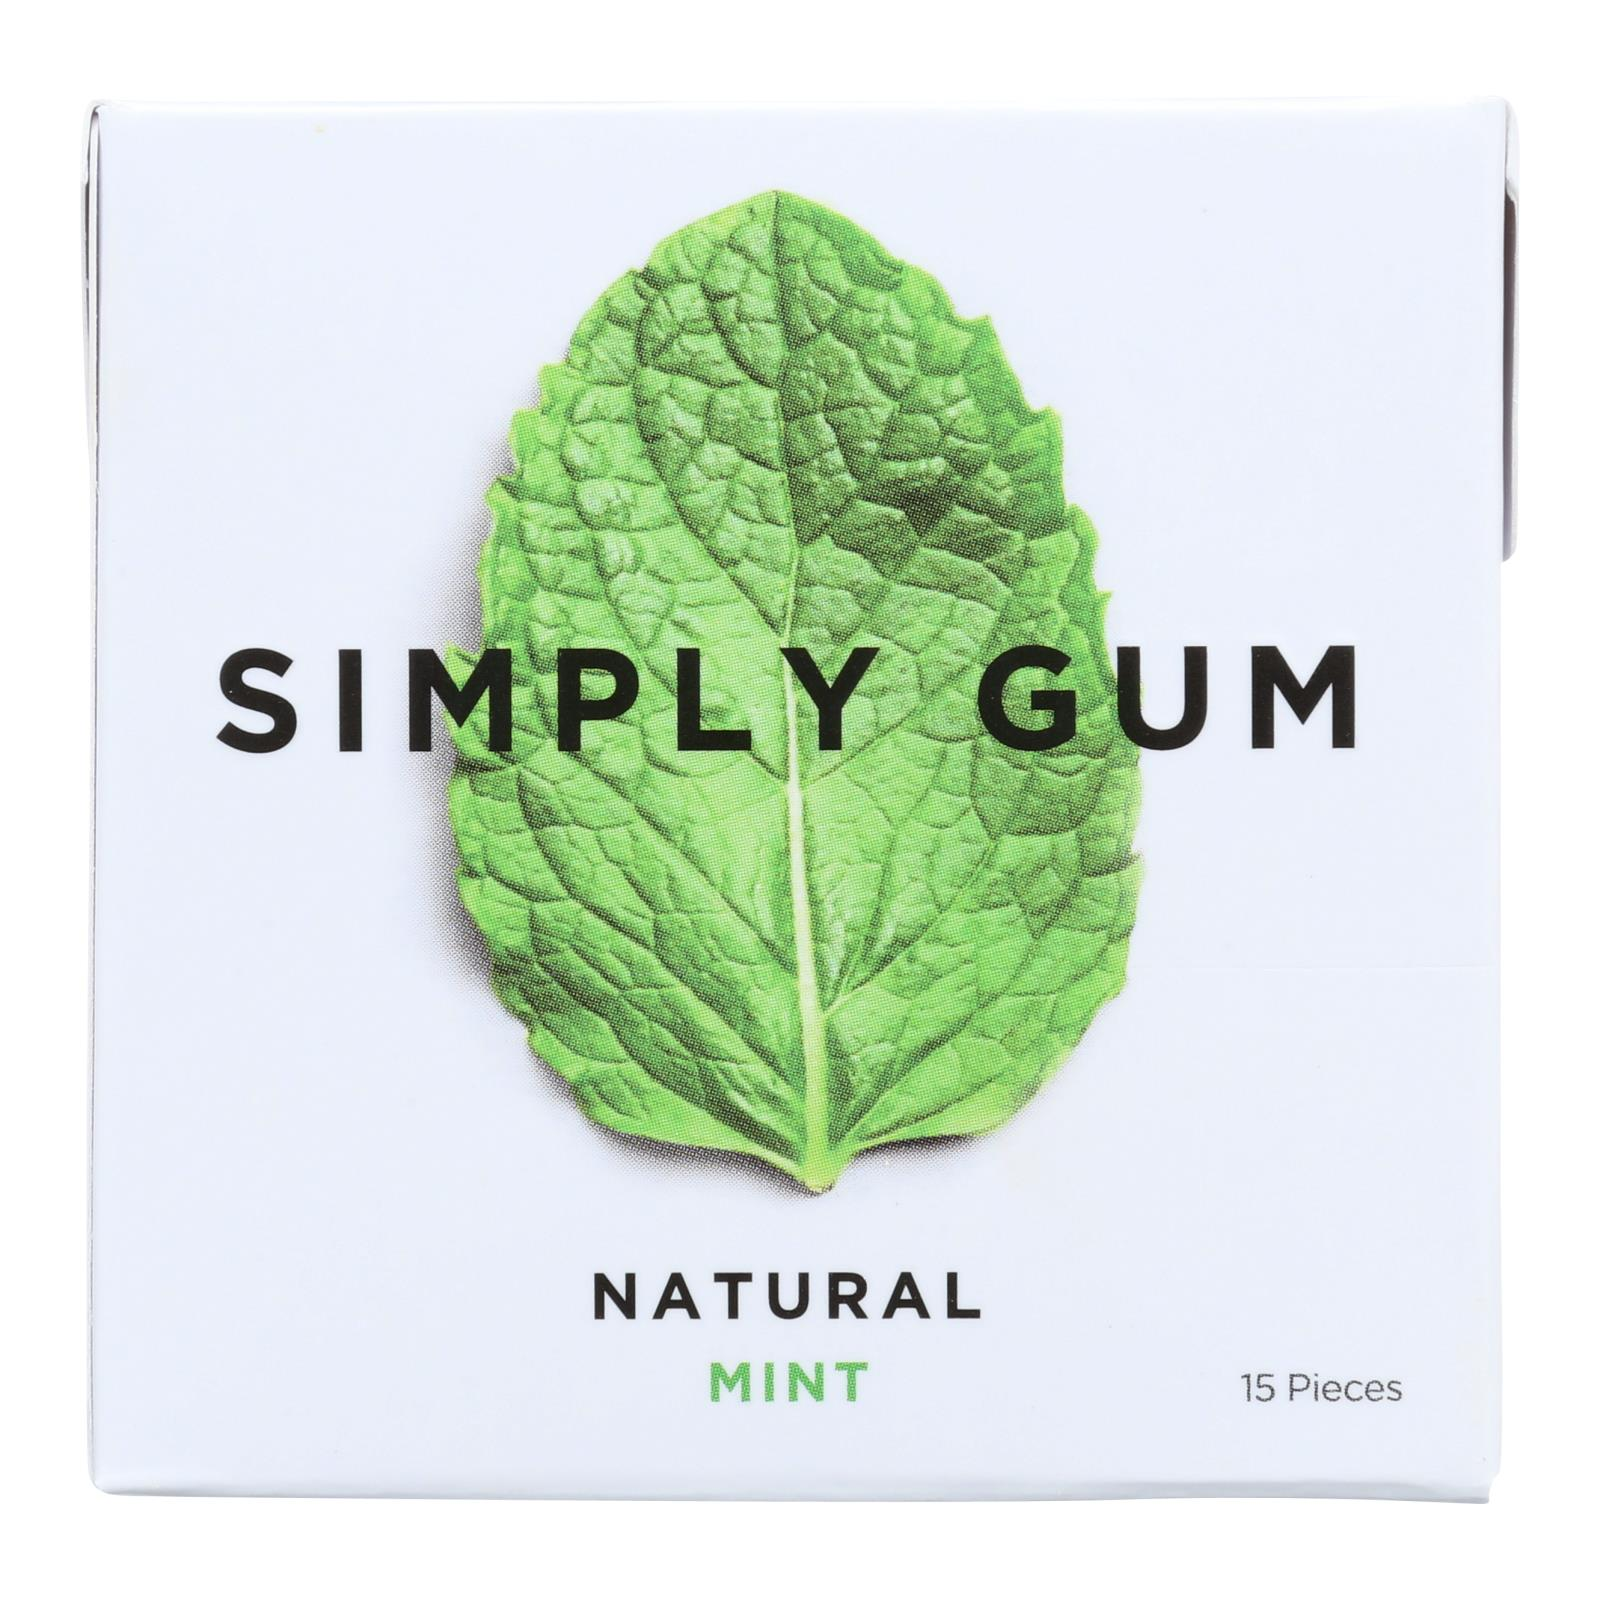 Simply Gum All Natural Gum - Mint - Case of 12 - 15 Count